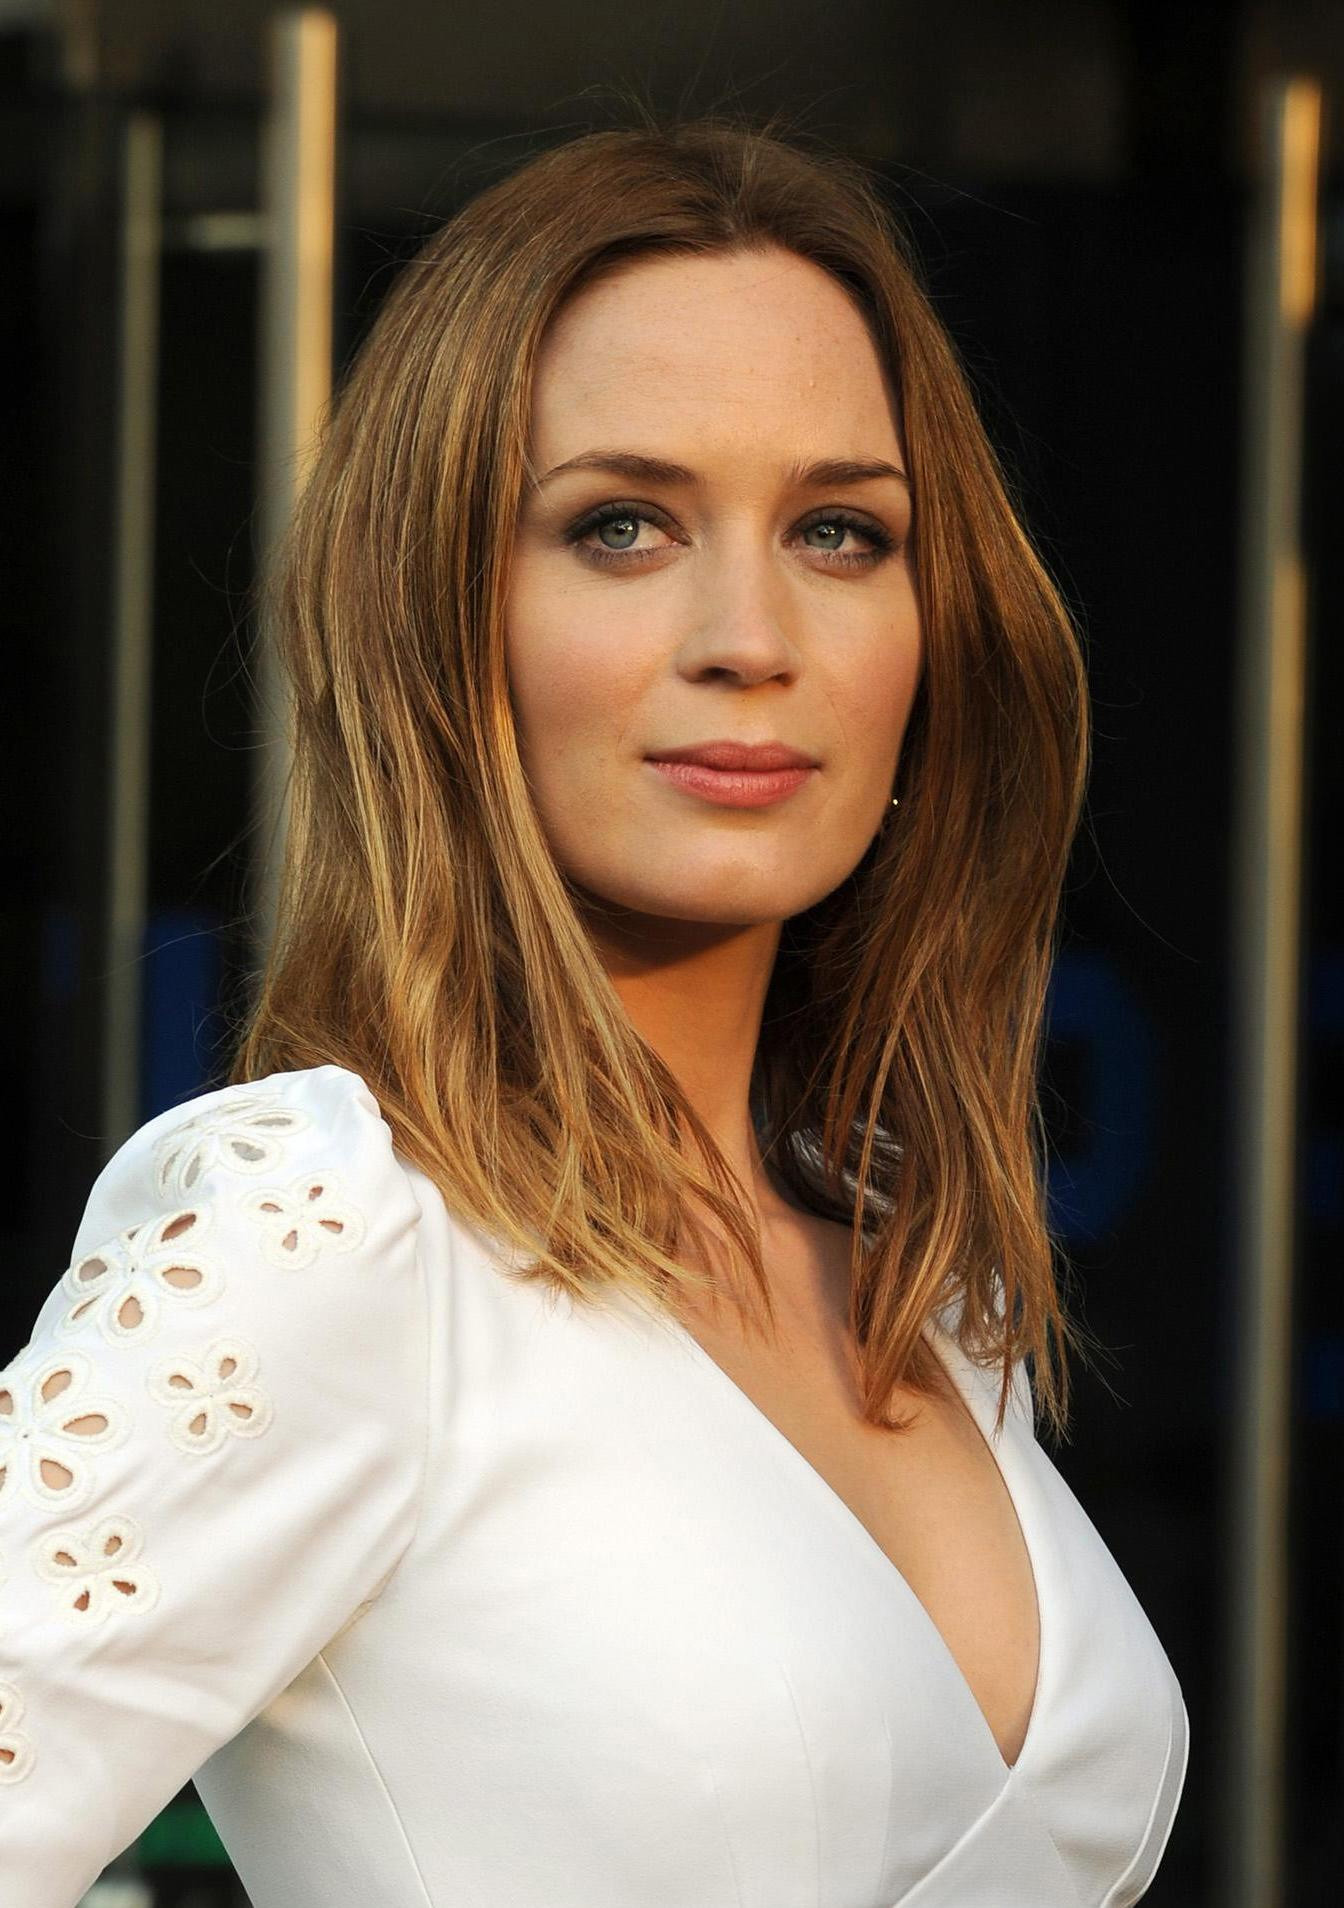 30/01/2011 PA File Photo of Emily Blunt, arriving for the premiere of Gnomeo and Juliet, an animated film produced by Sir Elton John and David Furnish, at the Odeon Leicester Square, London. See PA Feature SHOWBIZ Insider. Picture credit should read: Anthony Devlin/PA Photos. WARNING: This picture must only be used to accompany PA Feature SHOWBIZ Insider.